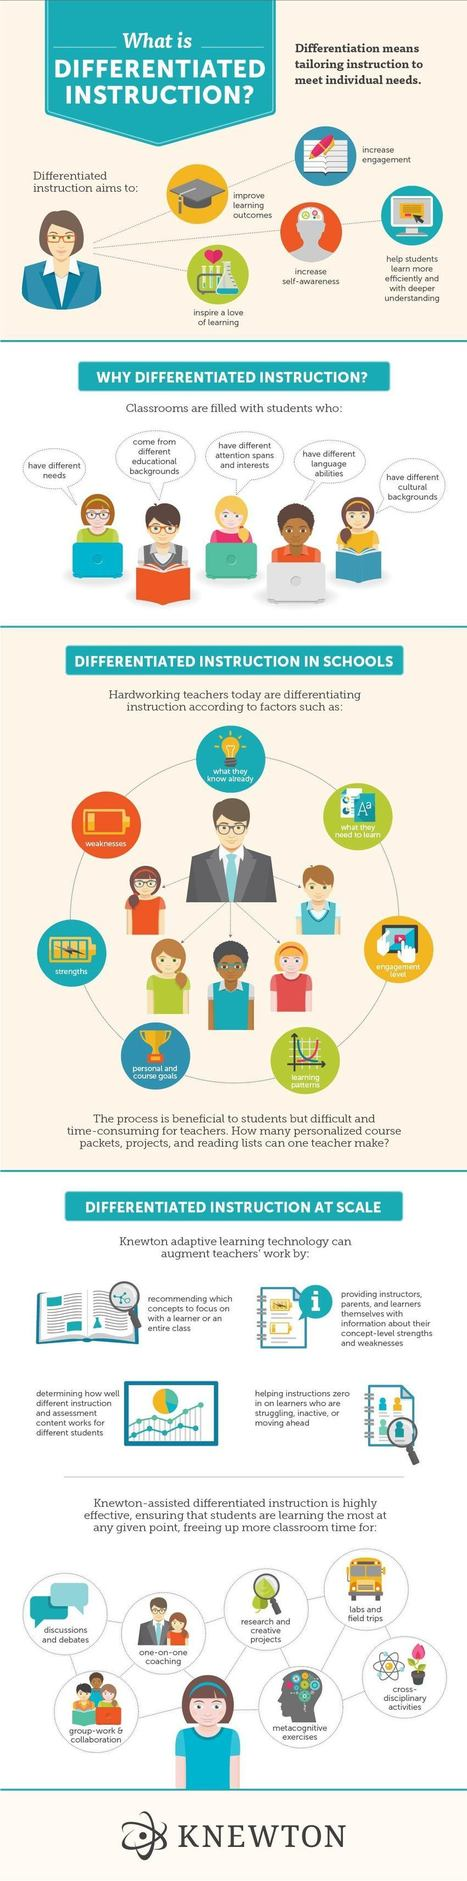 10 Examples & Non-Examples Of Differentiated Instruction - Infographic | ICT inquiry and exploration | Scoop.it